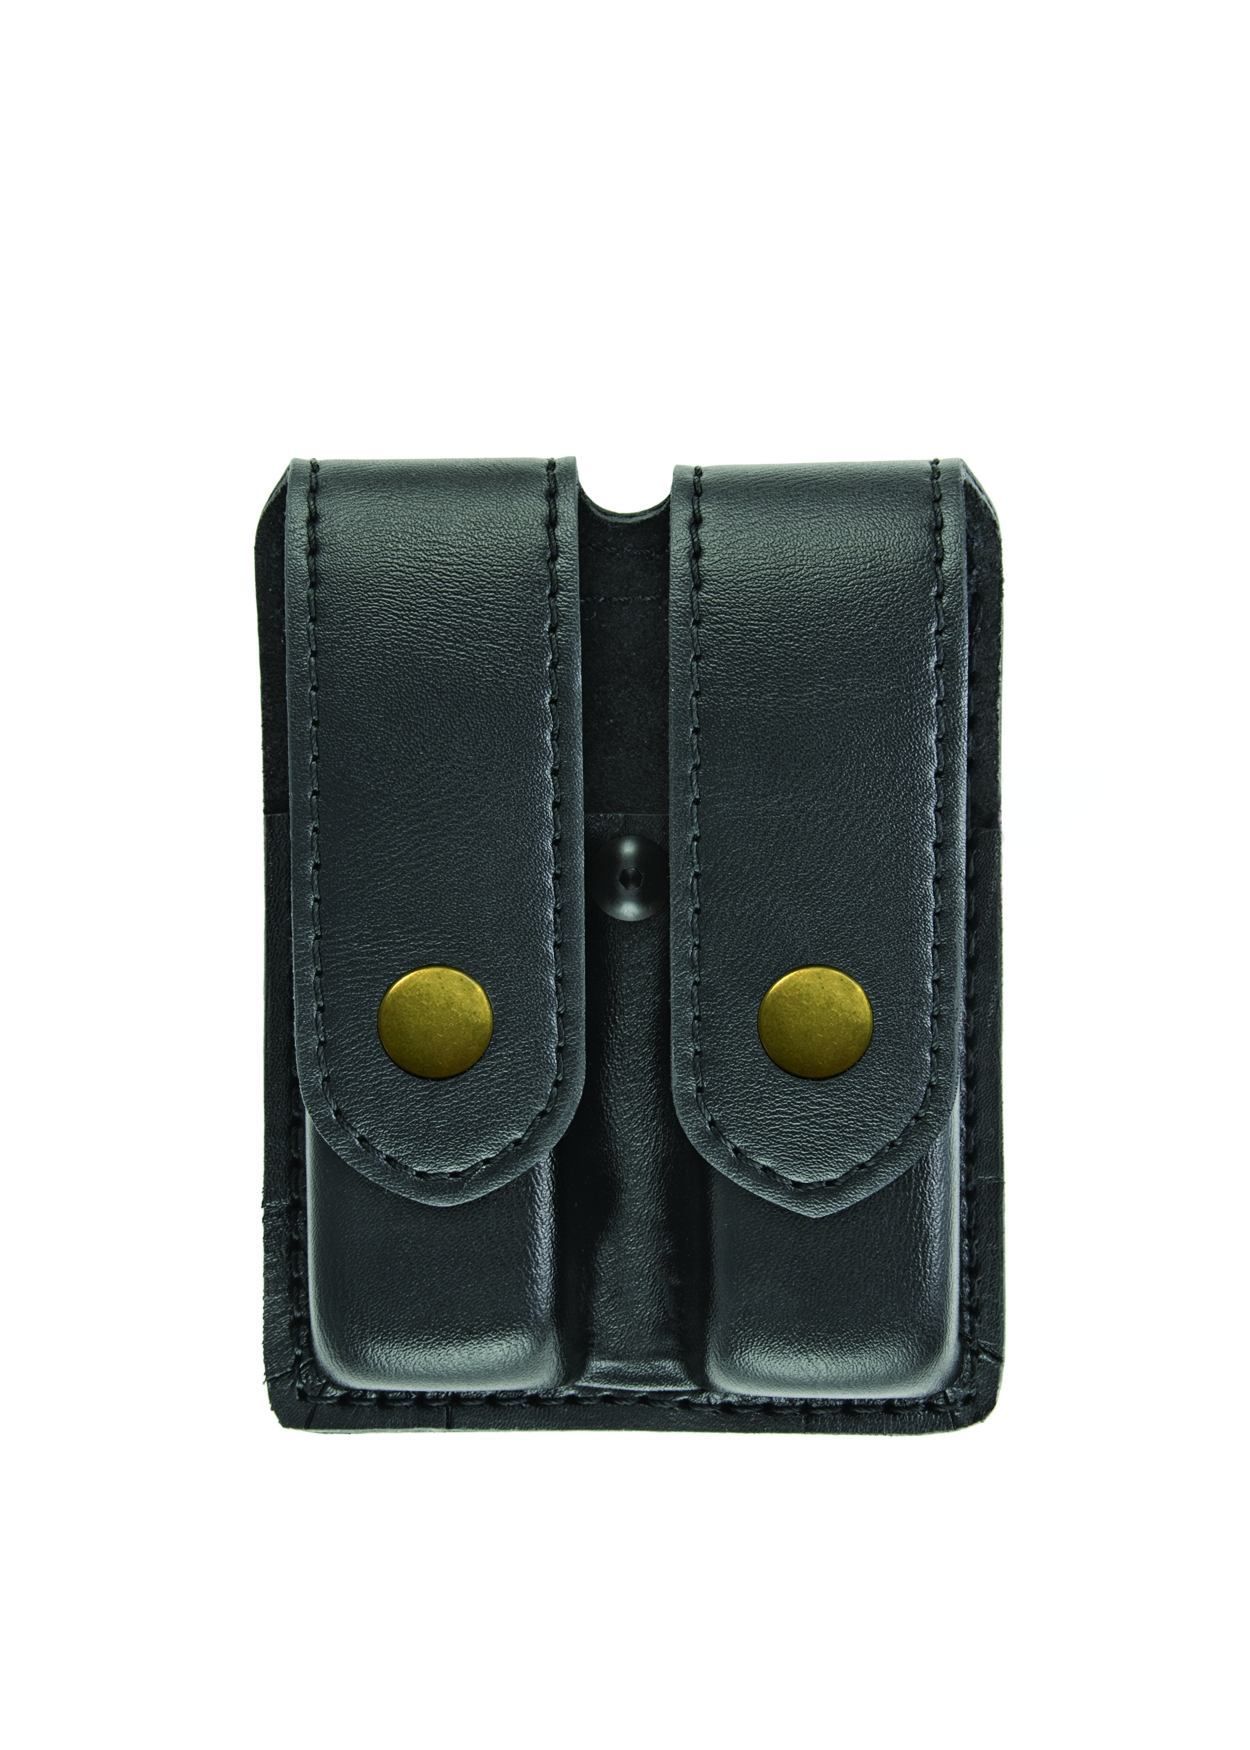 Double Magazine Case, Medium, AirTek, Smooth, Brass Snaps